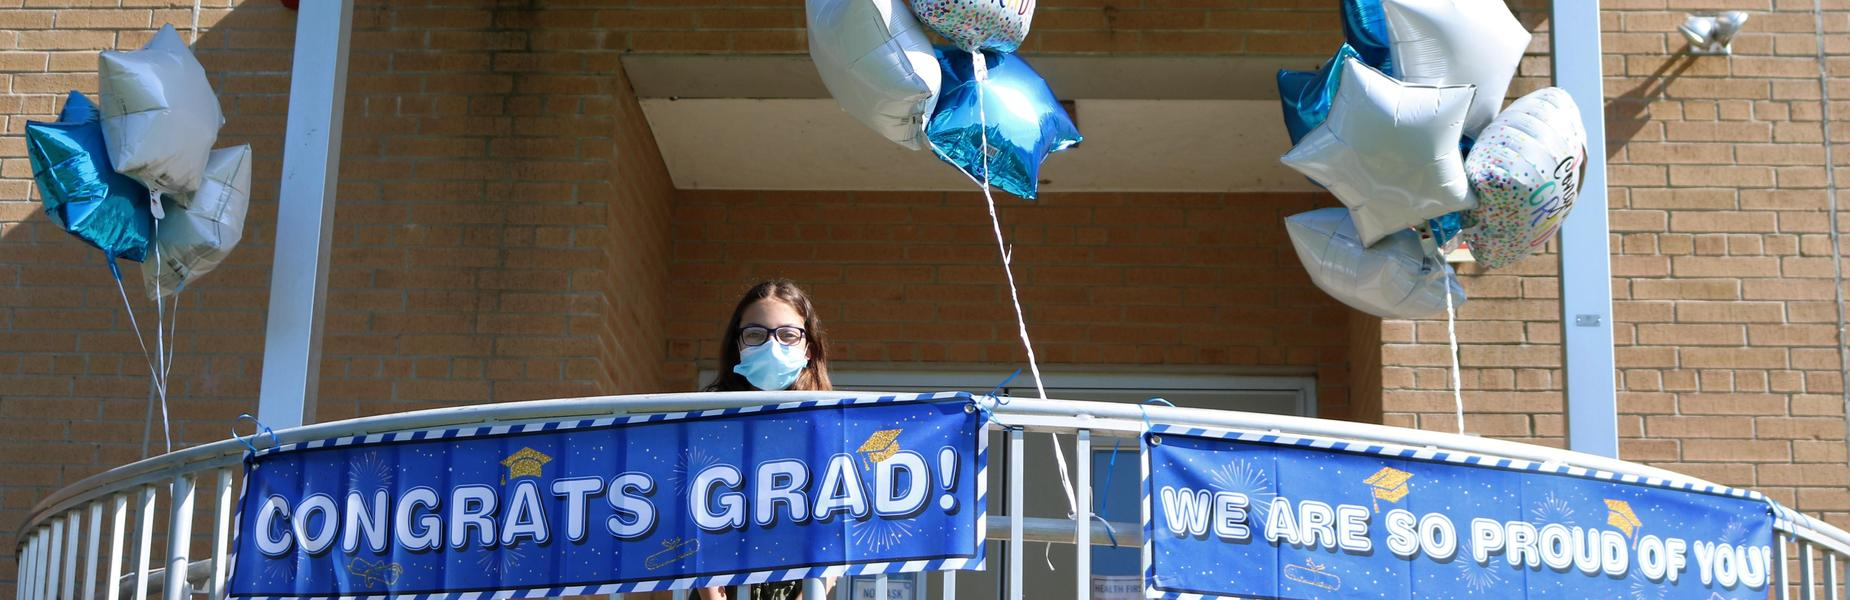 Photo of 5th grader standing next to congratulations signs and balloons on moving up day.